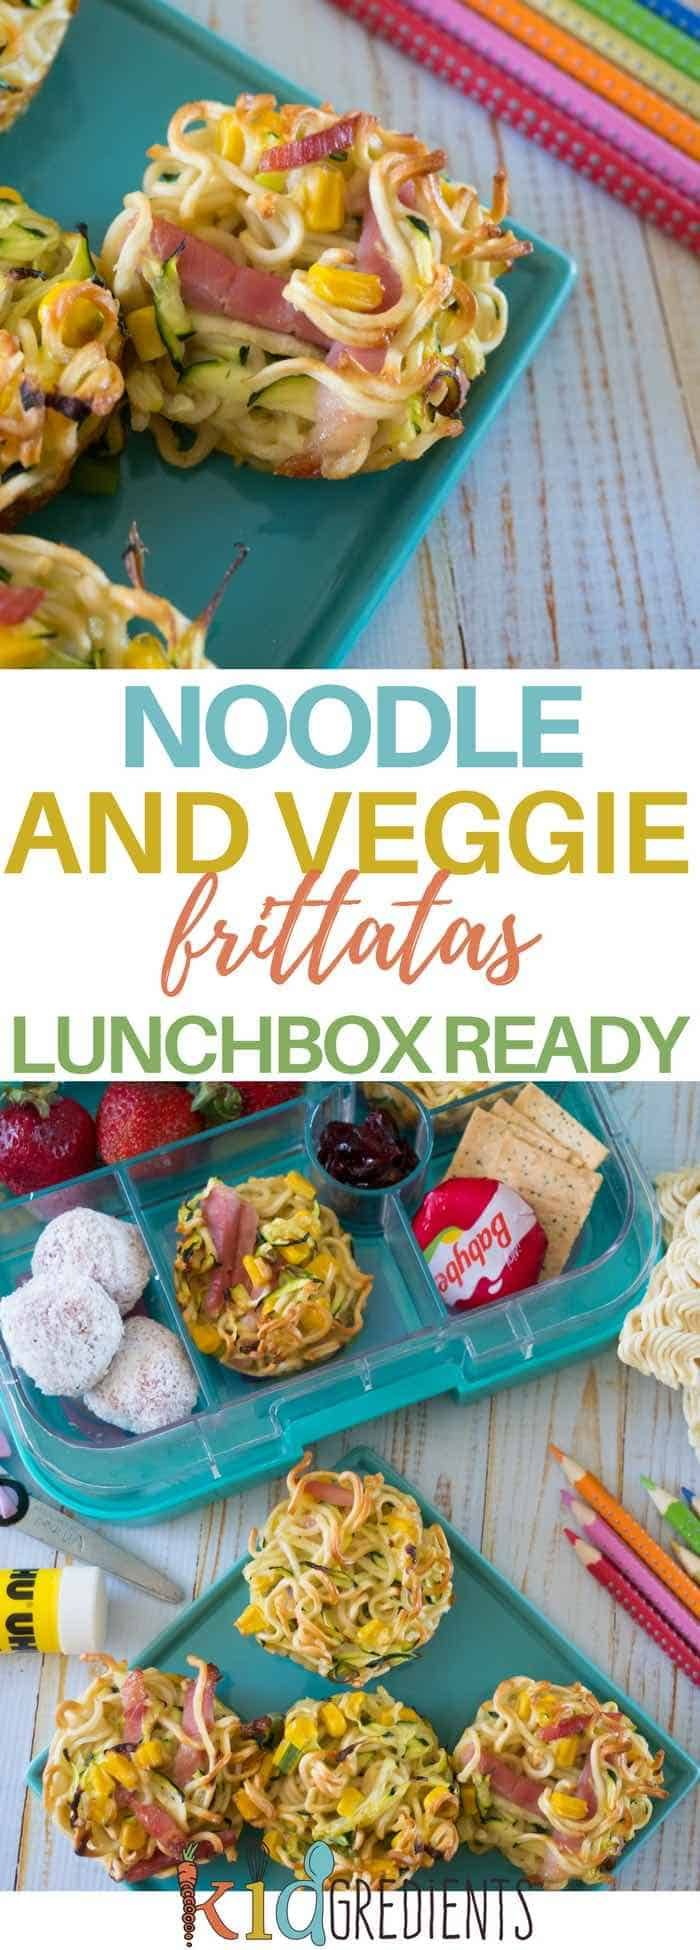 Perfect for the lunchbox, these noodle and veggie frittatas are a fun way to include veggies and eggs!  Freezer friendly and super delicious. #kidsfood #lunchbox #kidslunchbox #